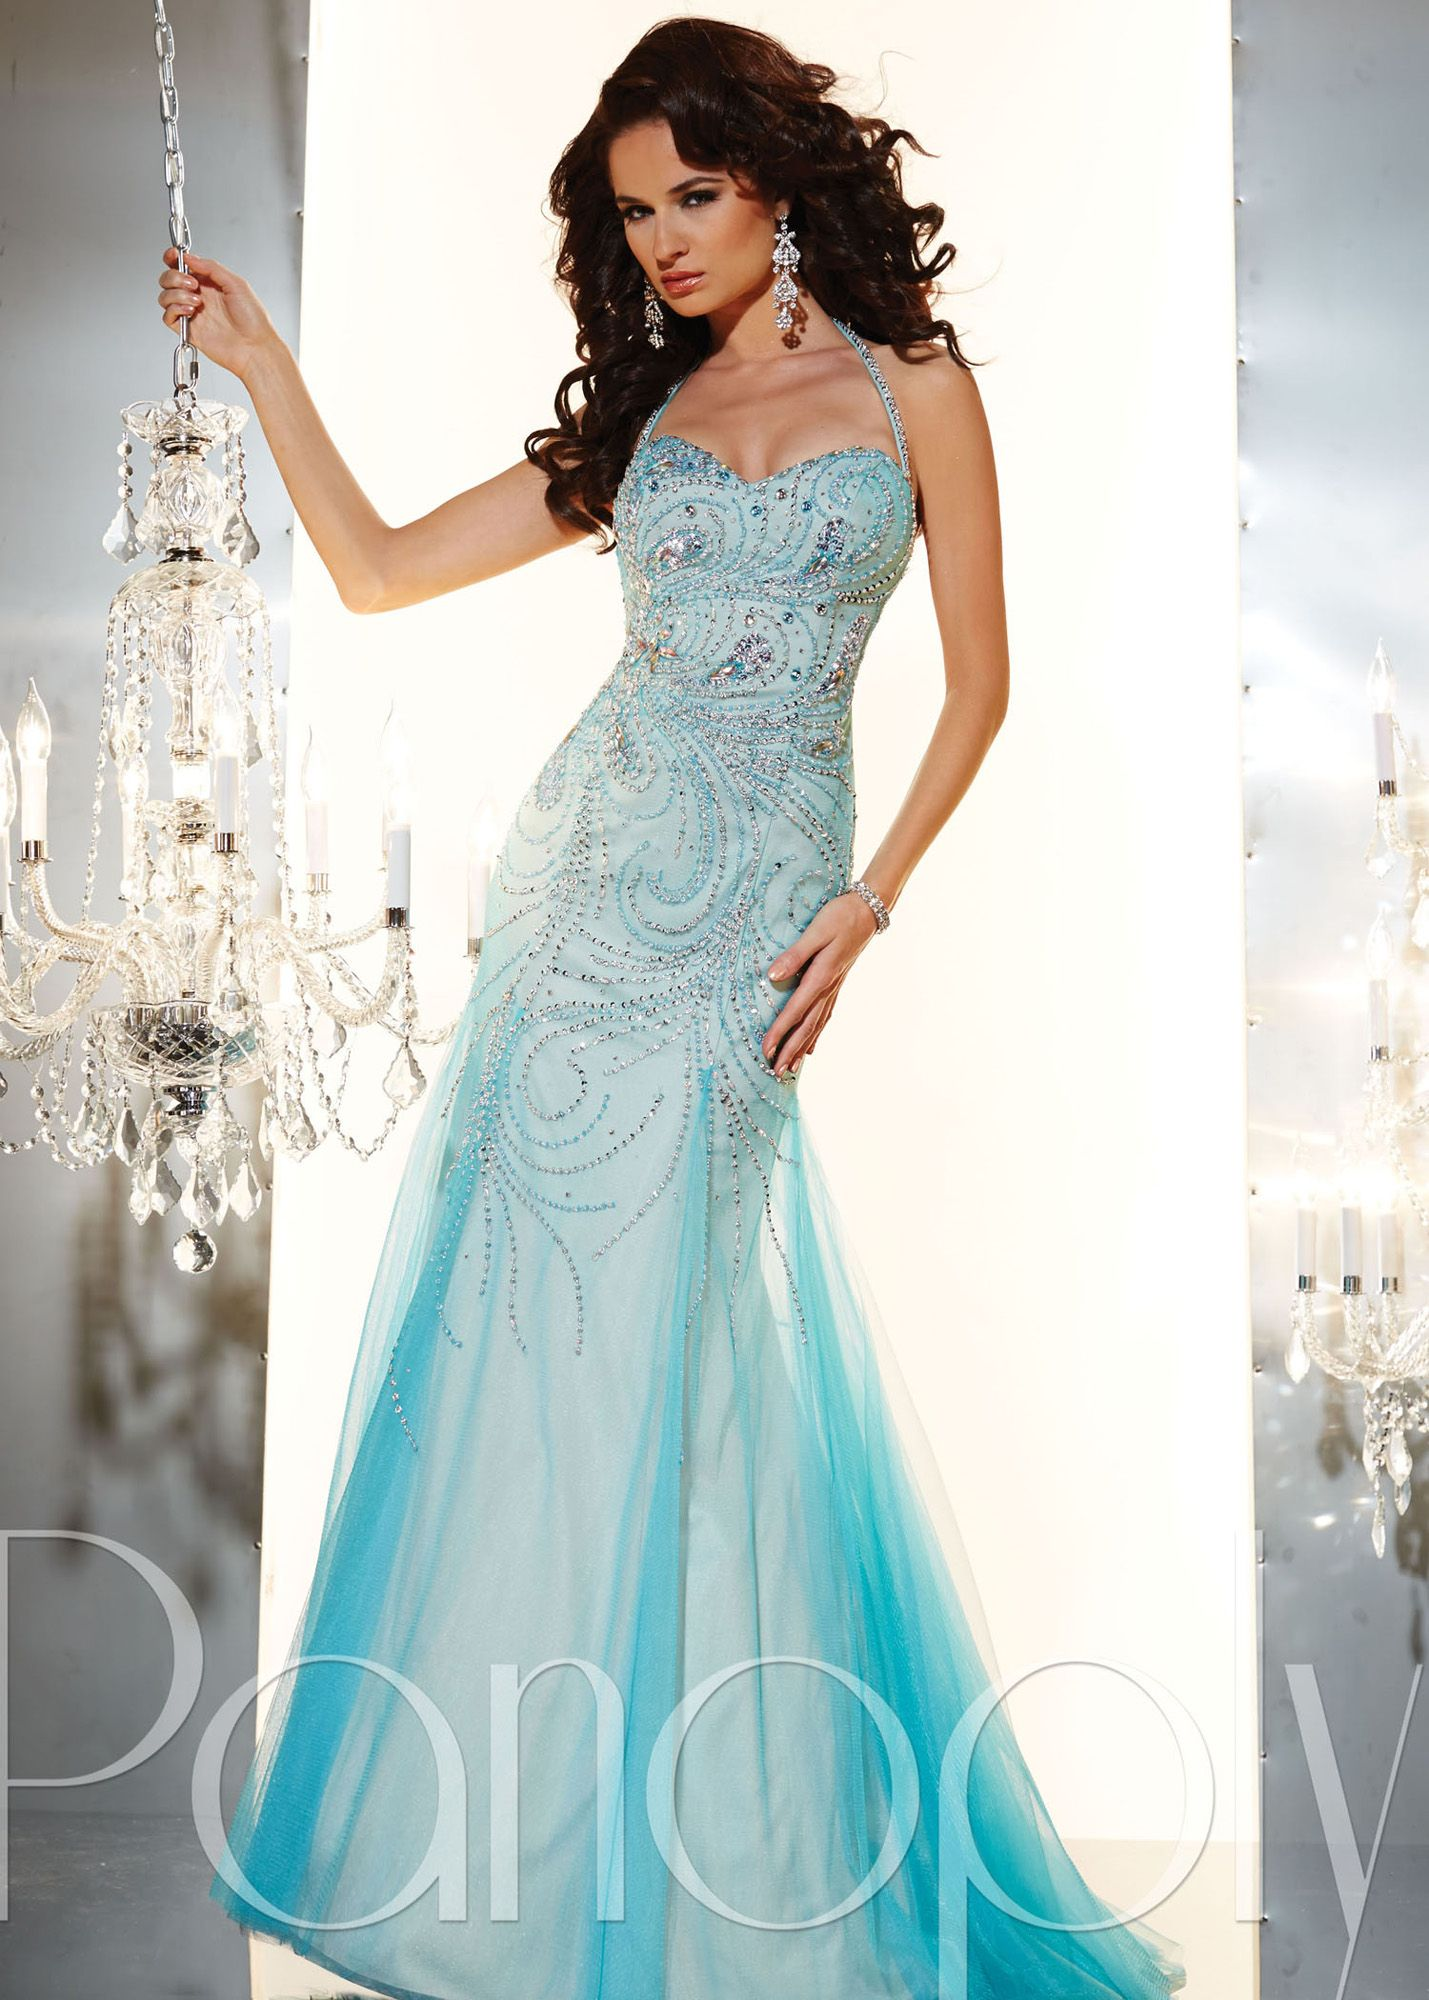 Panoply 14631 | Pageants, Prom and Free shipping